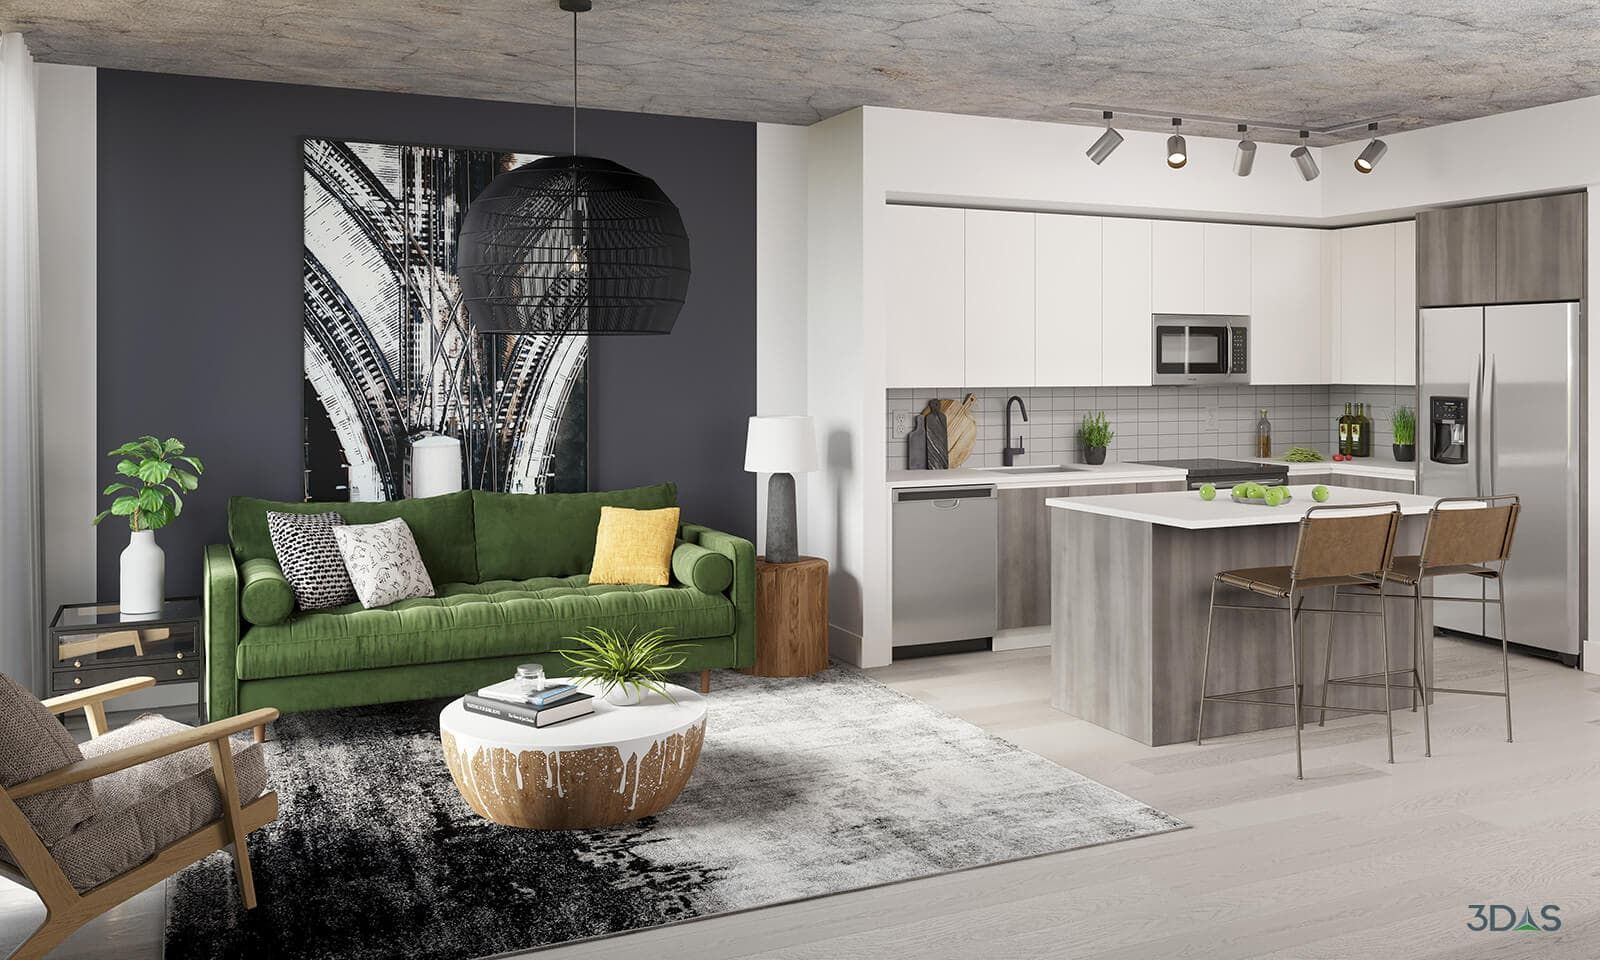 Midtown 8 Living Room And Kitchen Interior Design Renderings Interior Rendering Interior